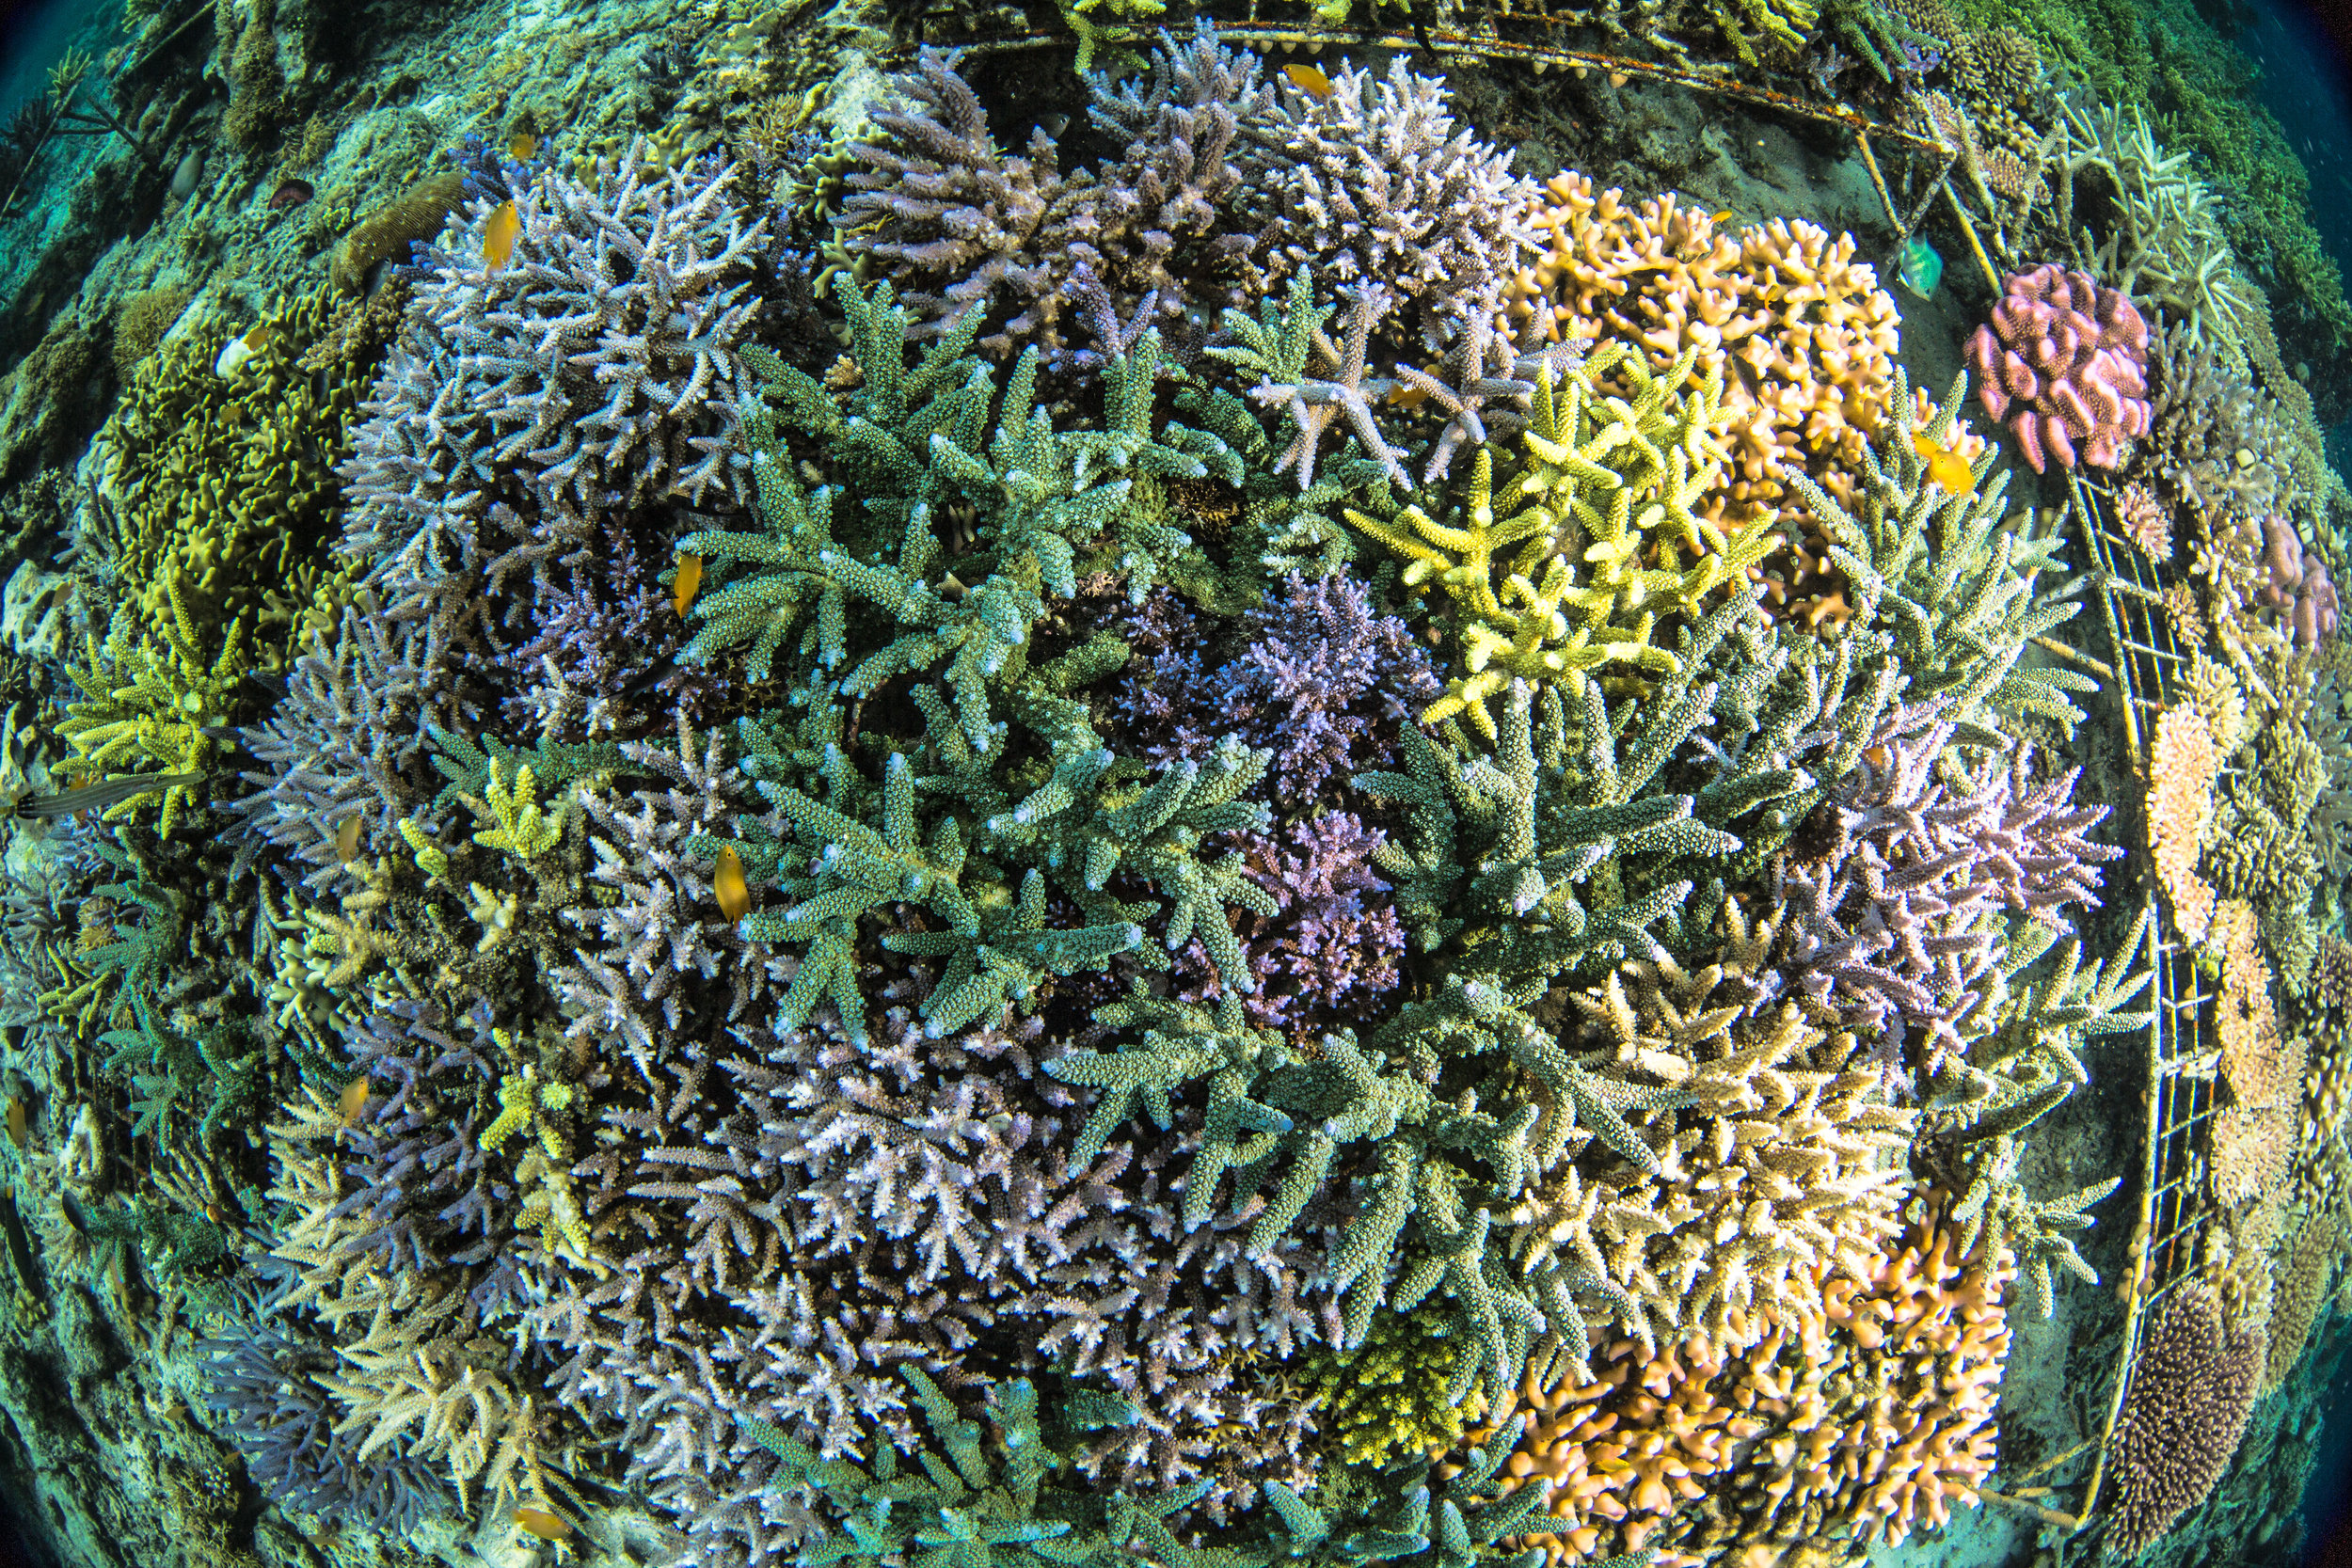 05 - Many species of coral are being grown CrEDIT: MArtin COLOGNOLI